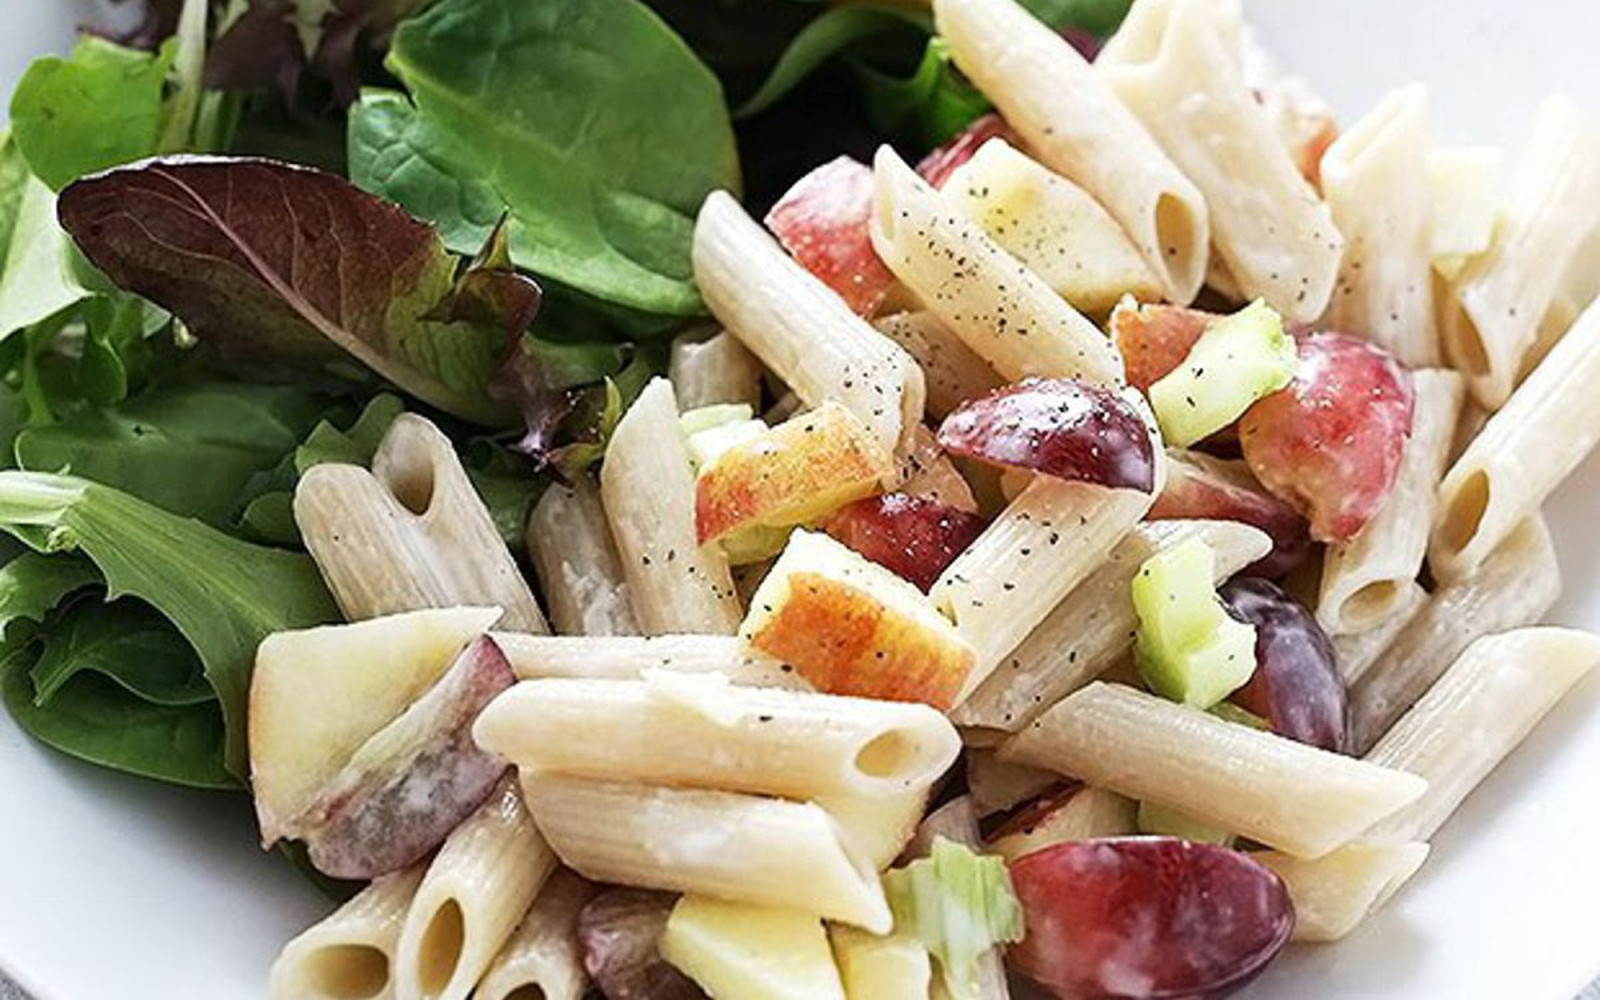 Apple and Grape Pasta Salad